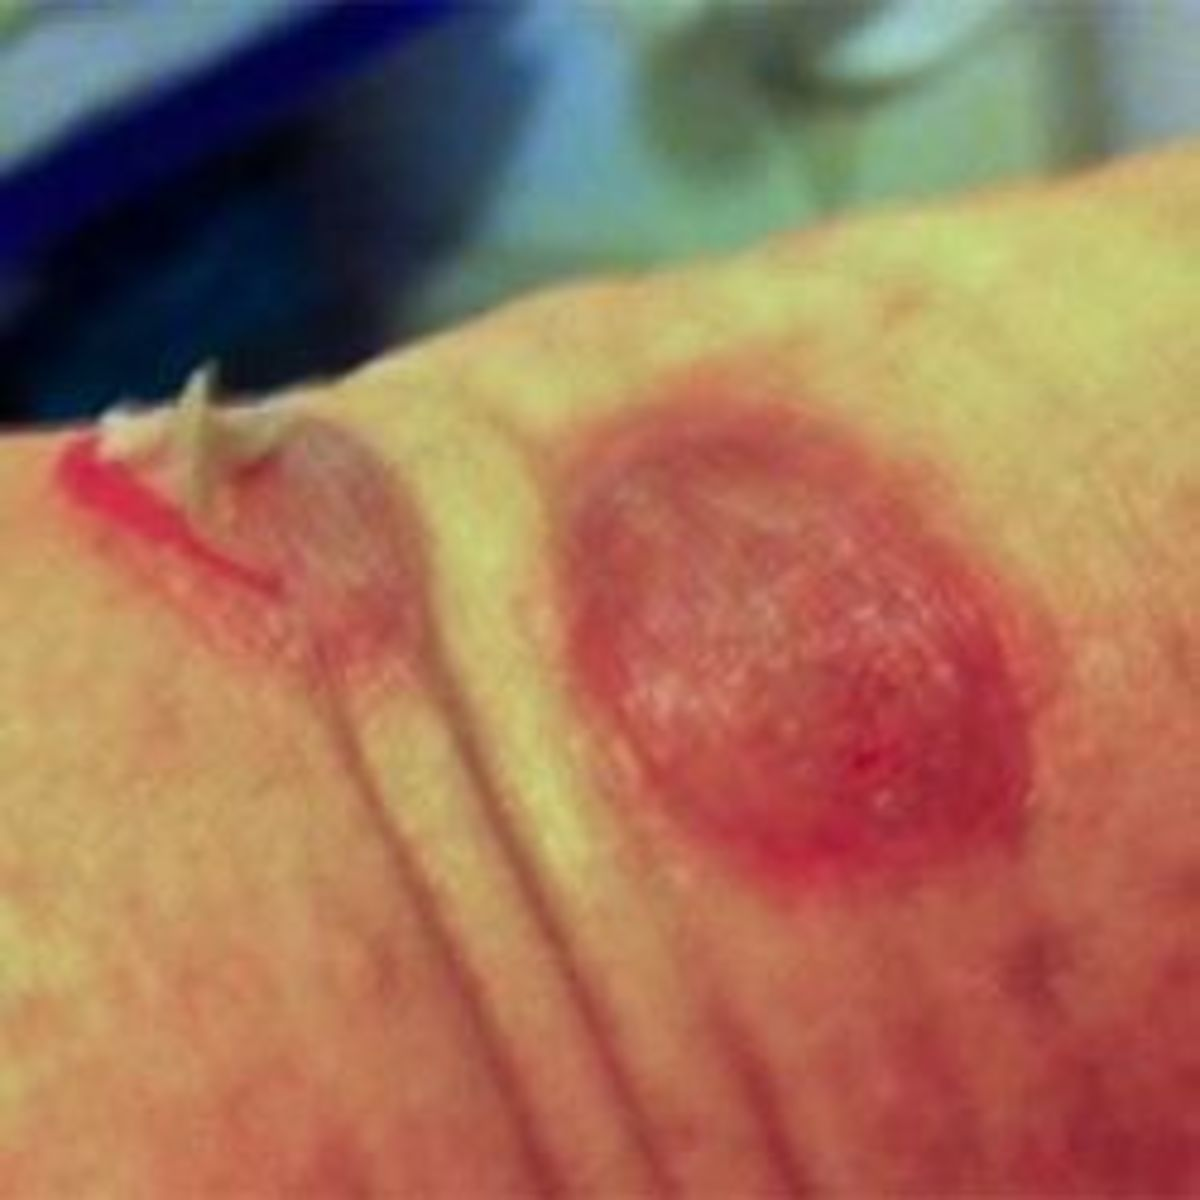 Photo of  Draining Bulbous Blister  on Wrist